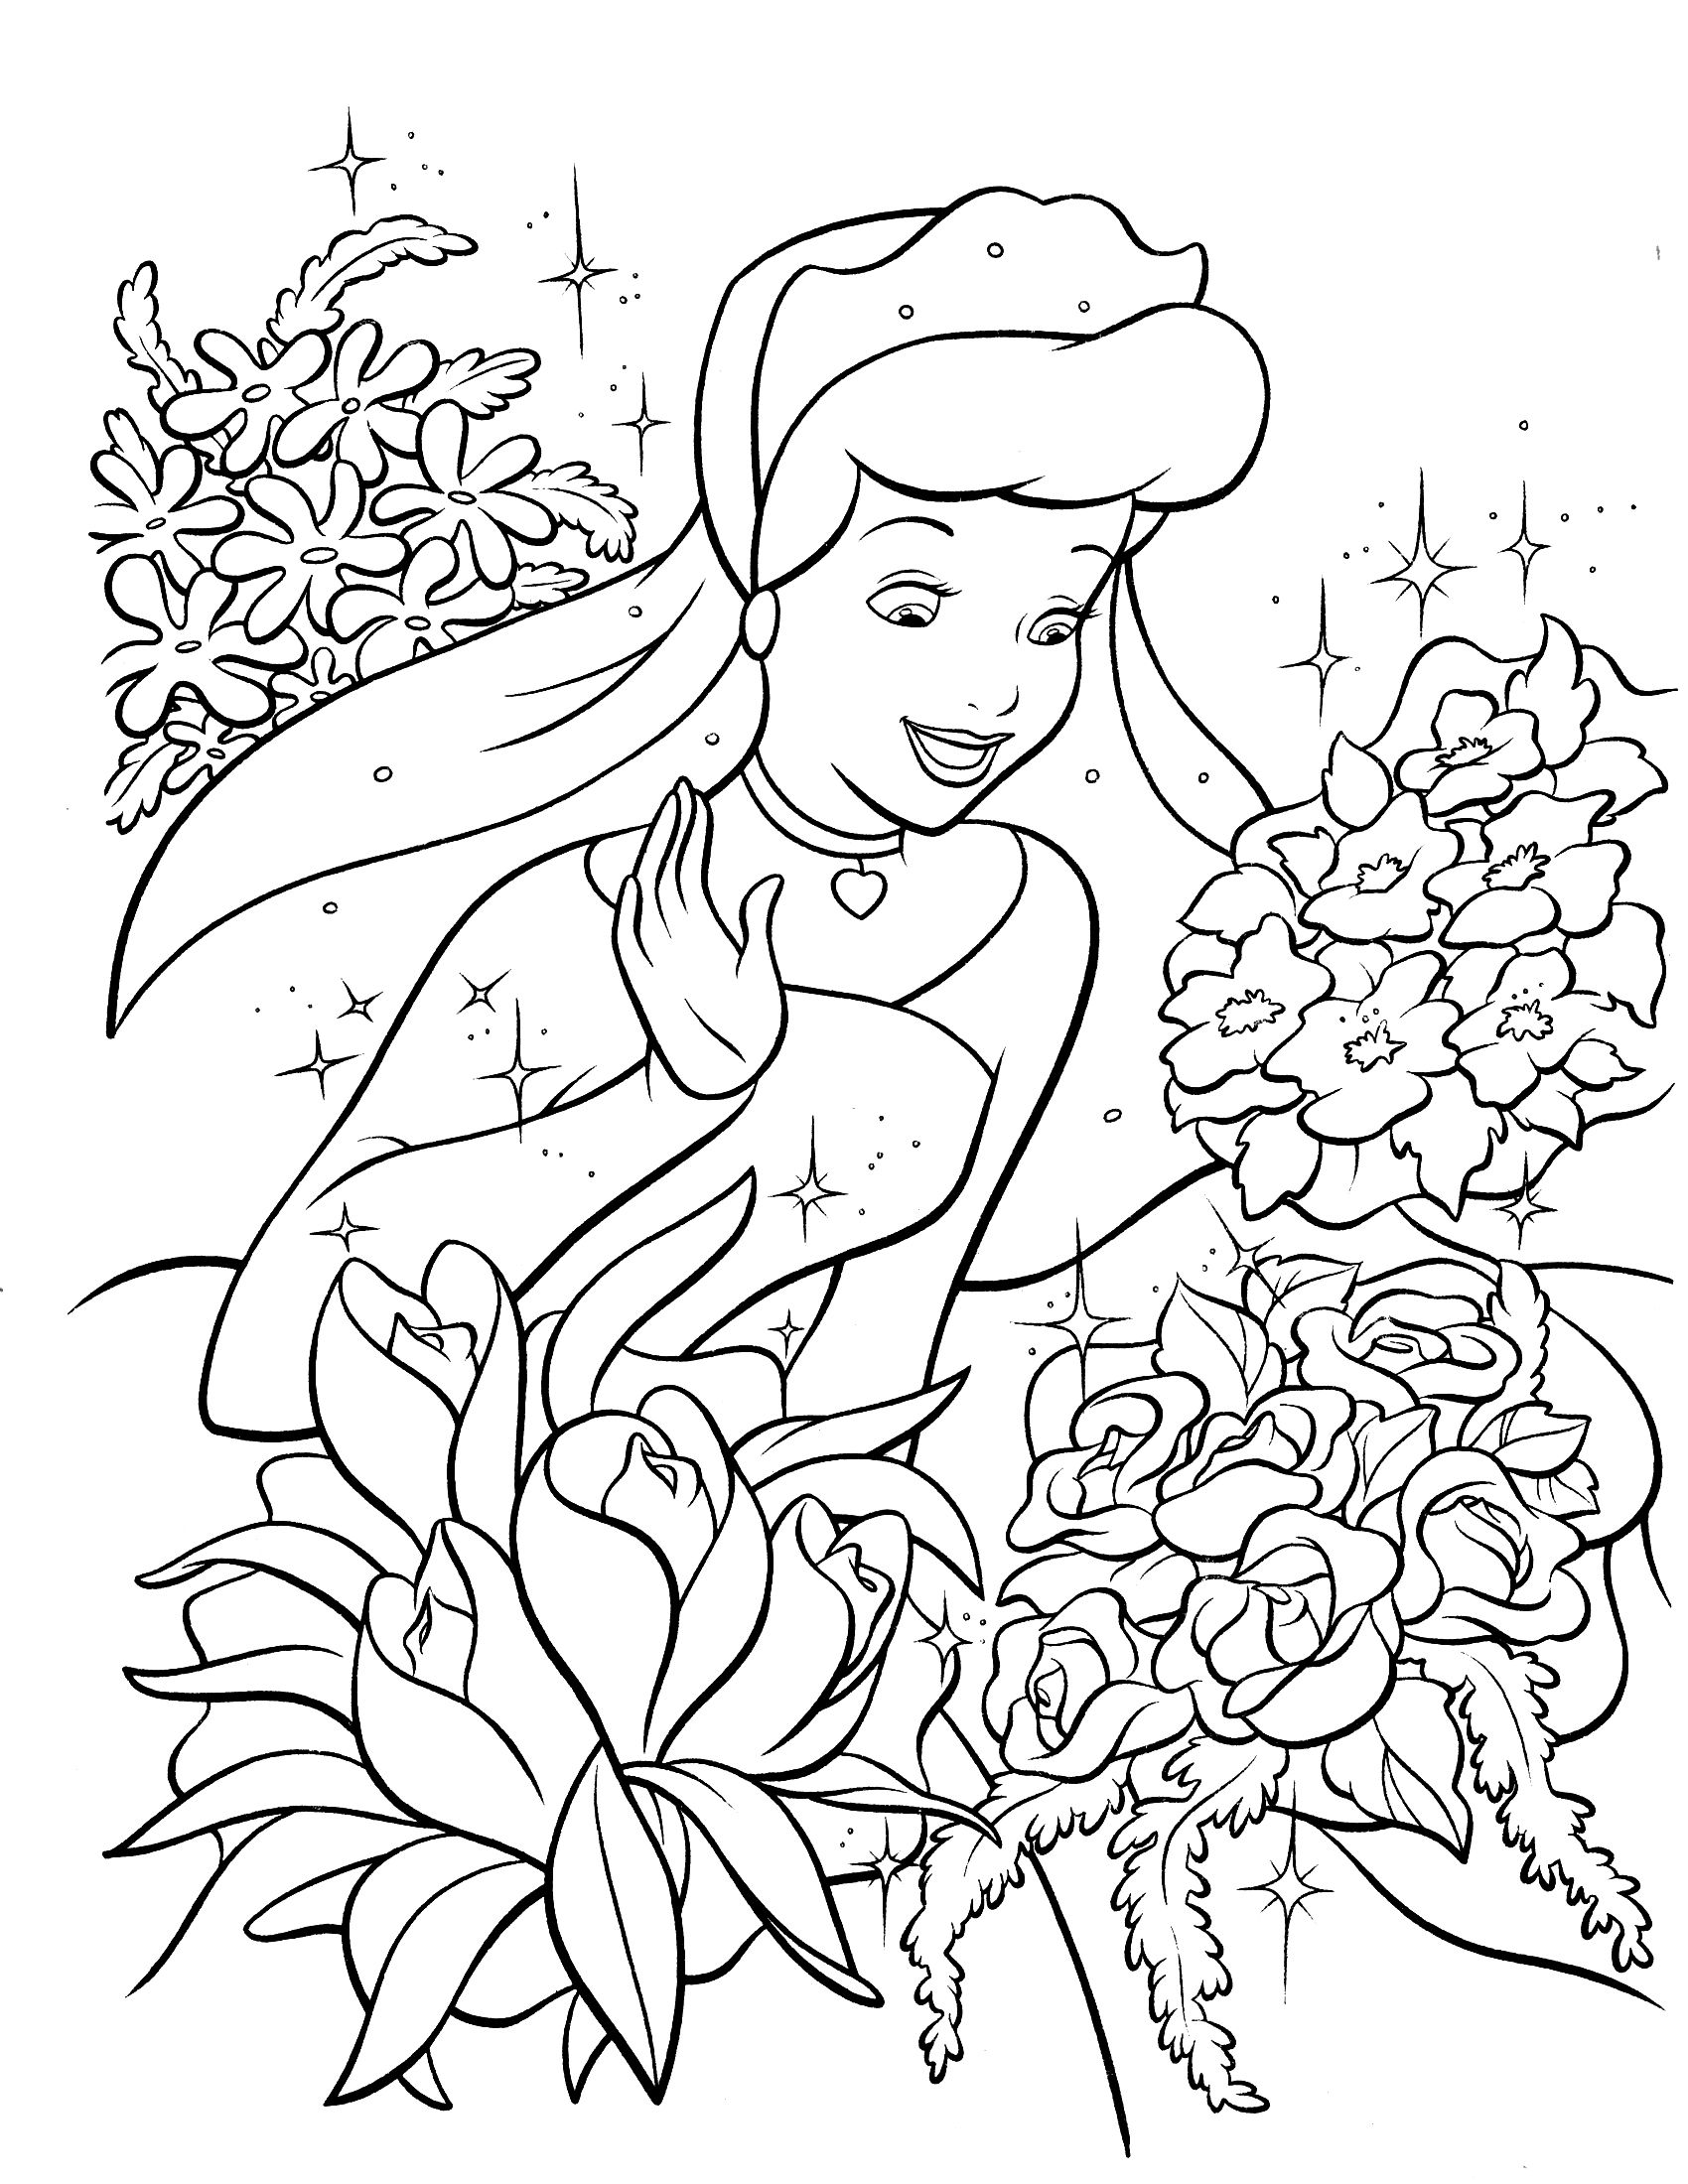 cinderella coloring page | Things to color in 2018 | Pinterest ...